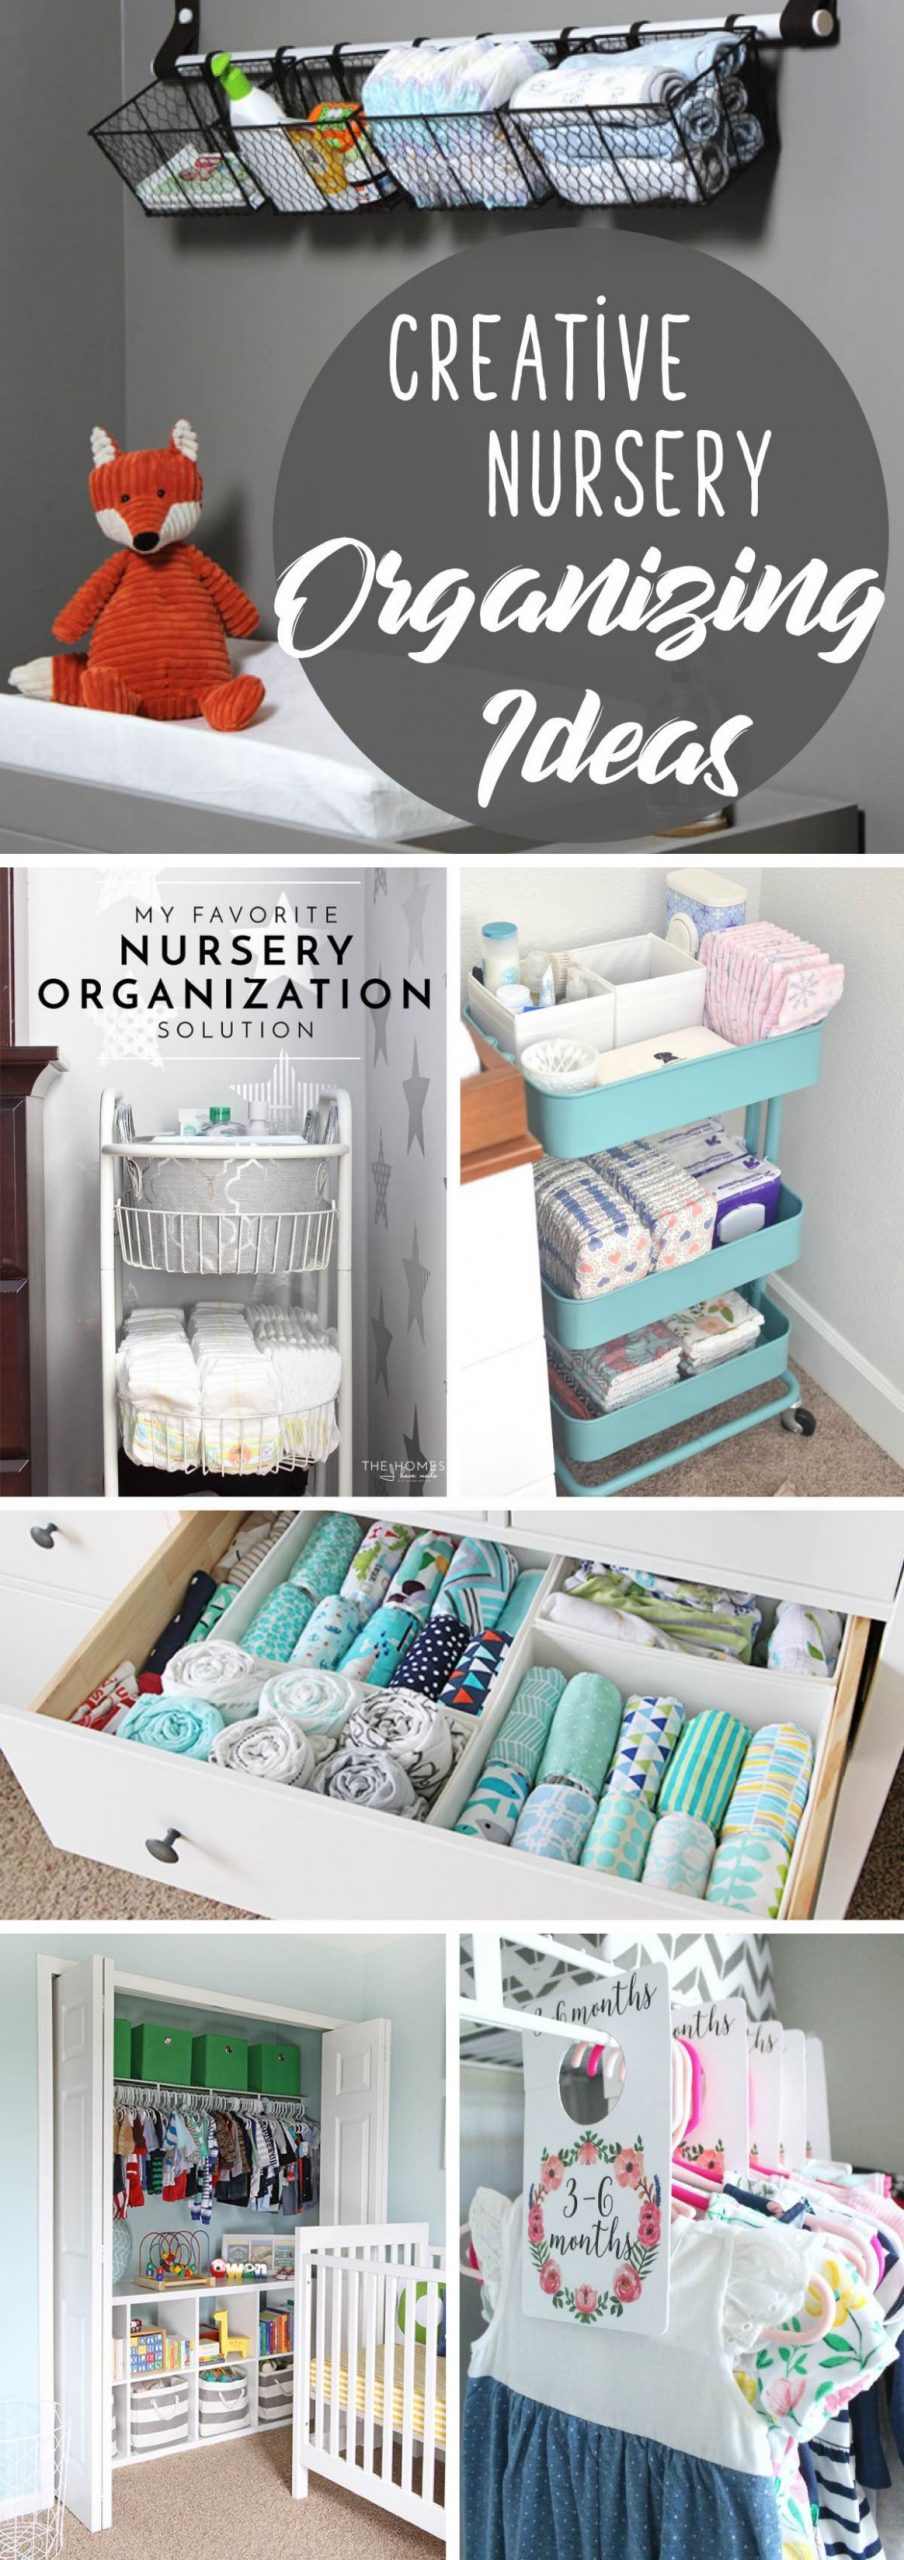 12 Creative Nursery Organizing Ideas Making the Baby Room Look  - Baby Room Organization